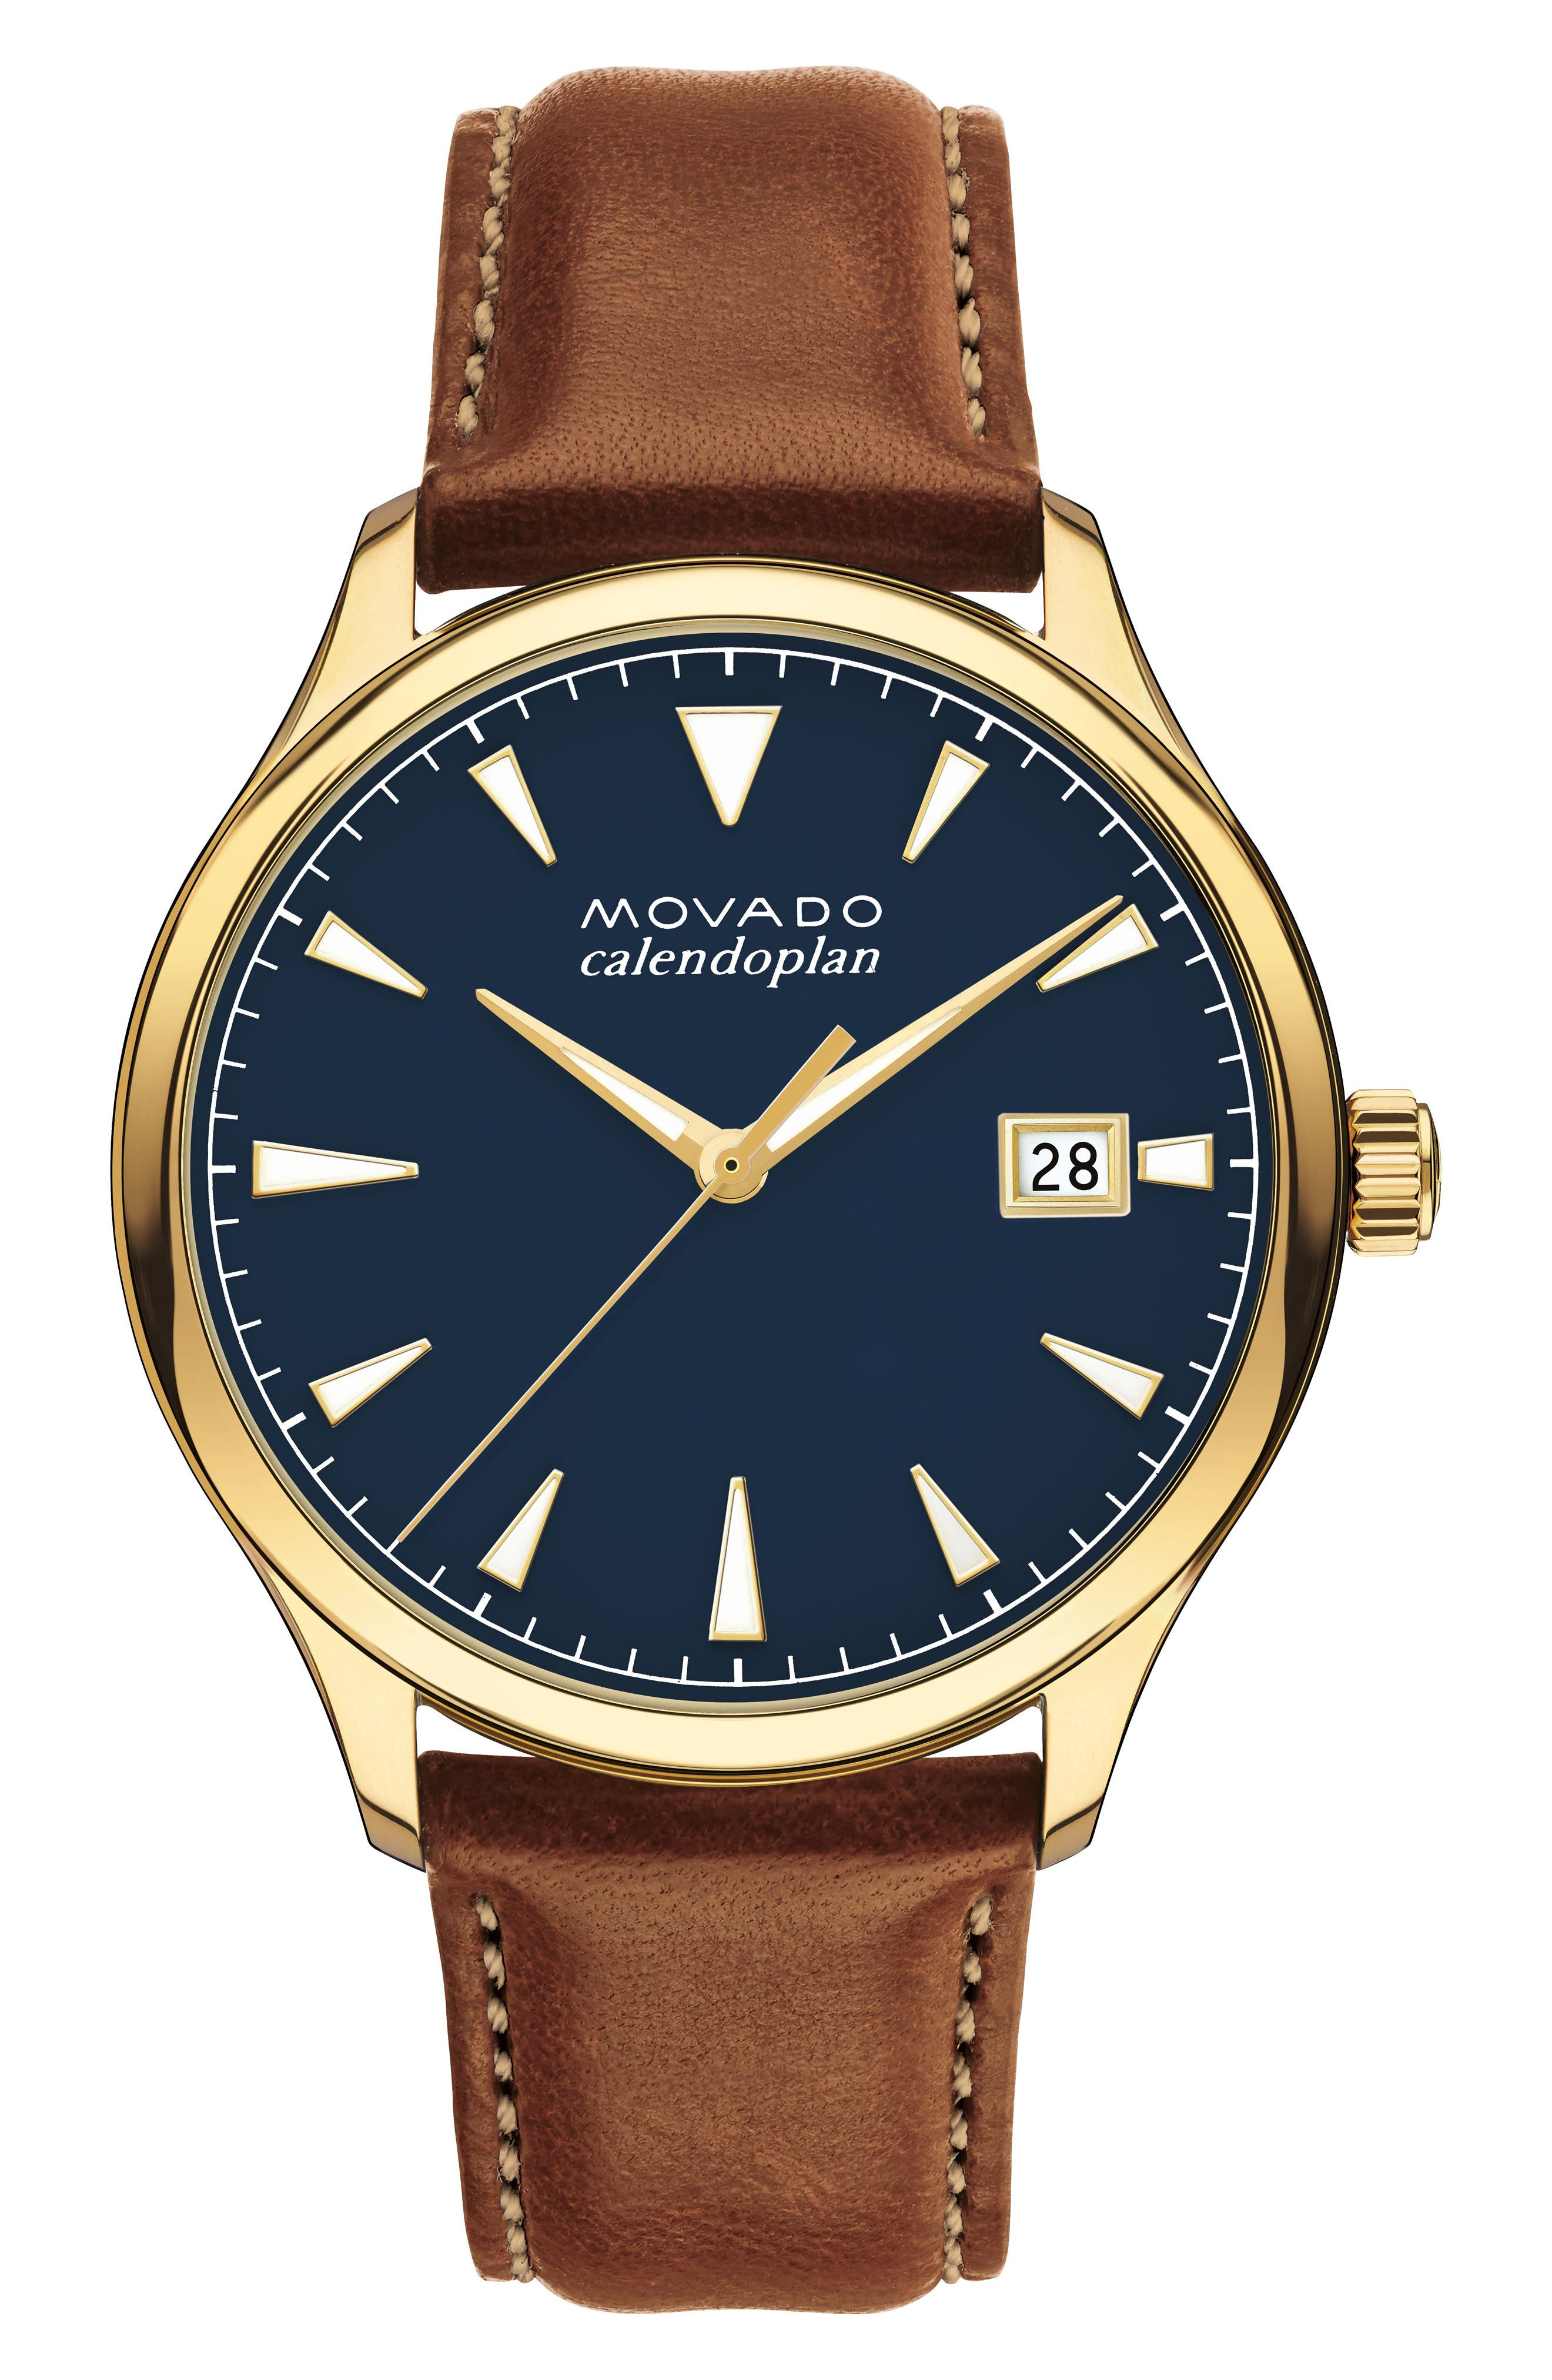 Main Image - Movado Heritage Calendoplan Leather Strap Watch, 42mm